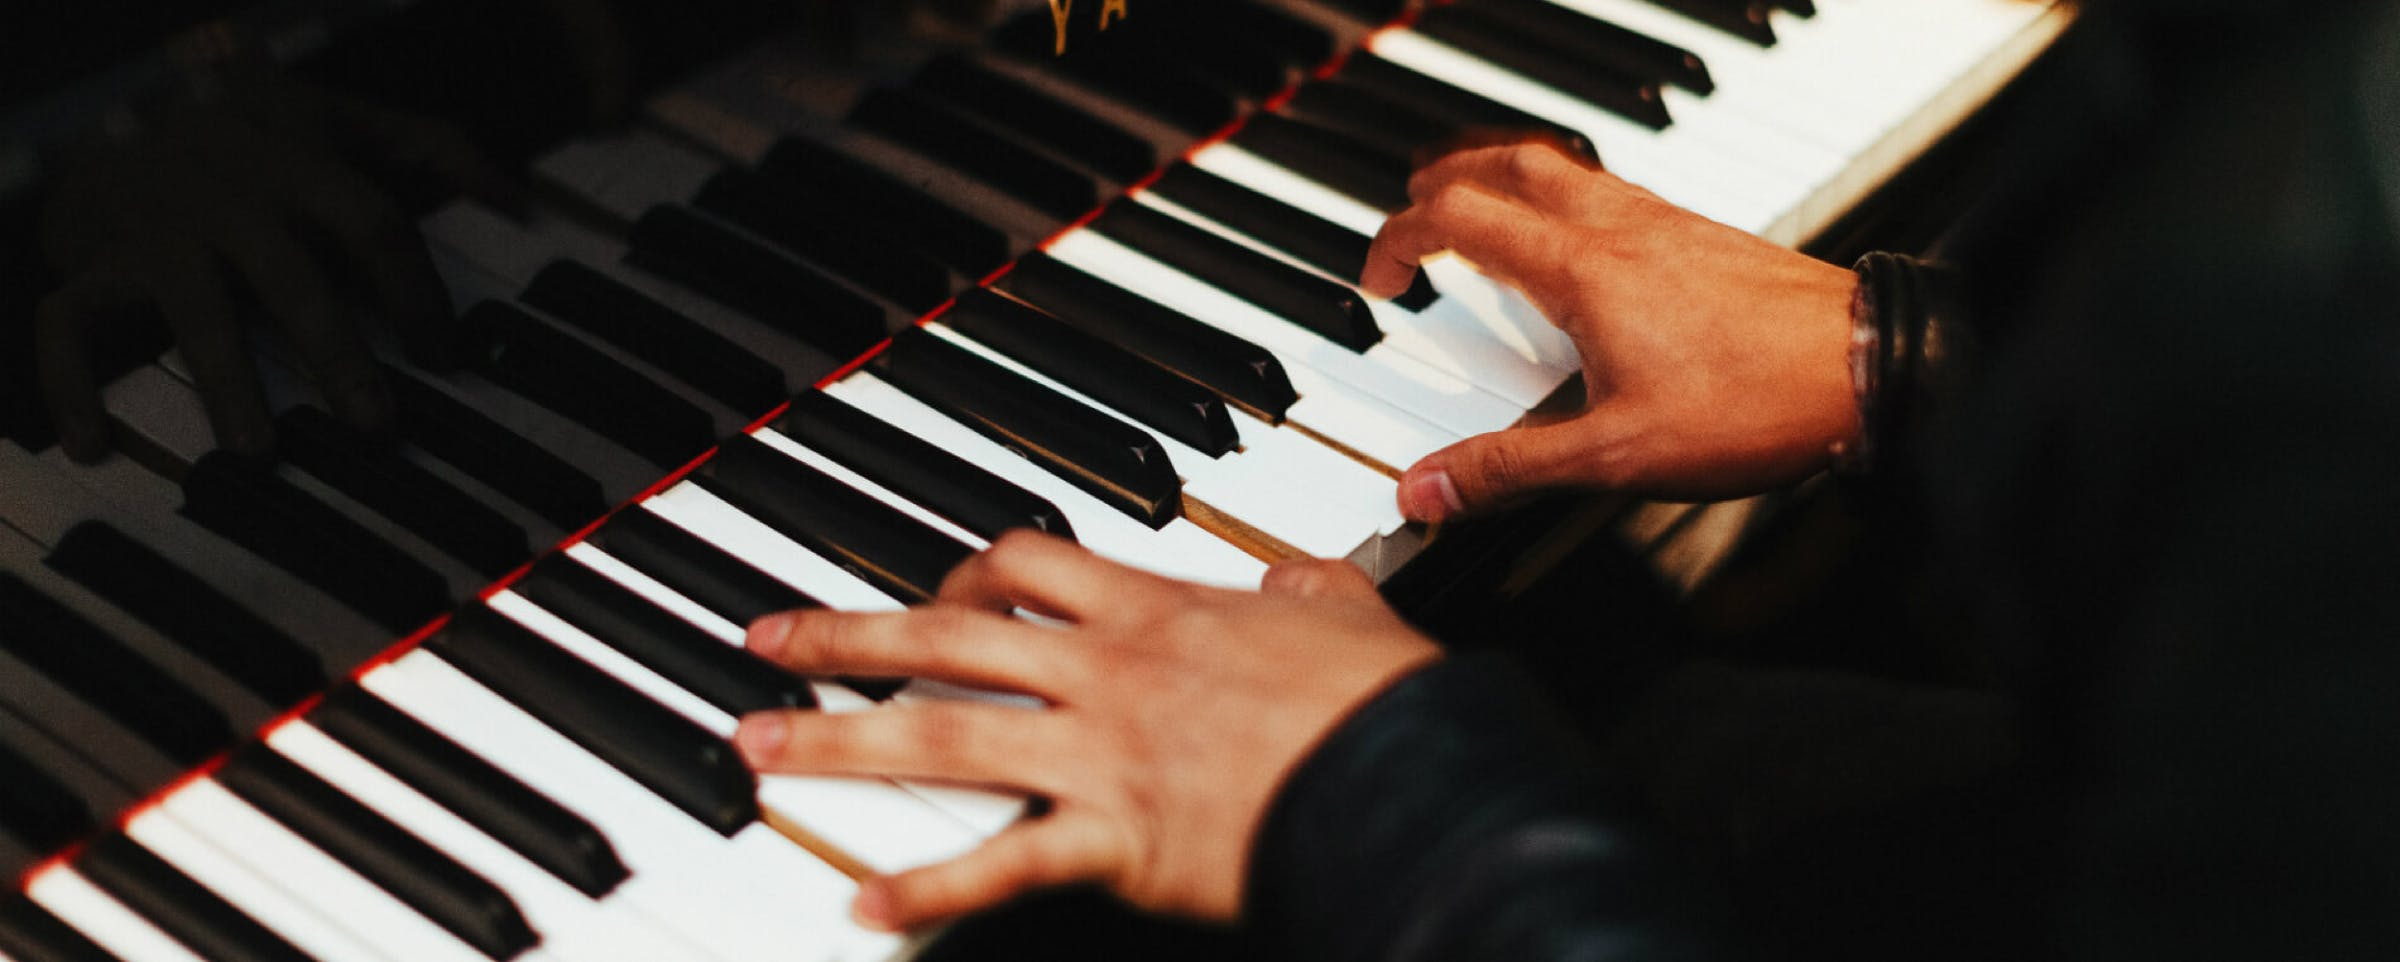 Two hands on a Yamaha piano